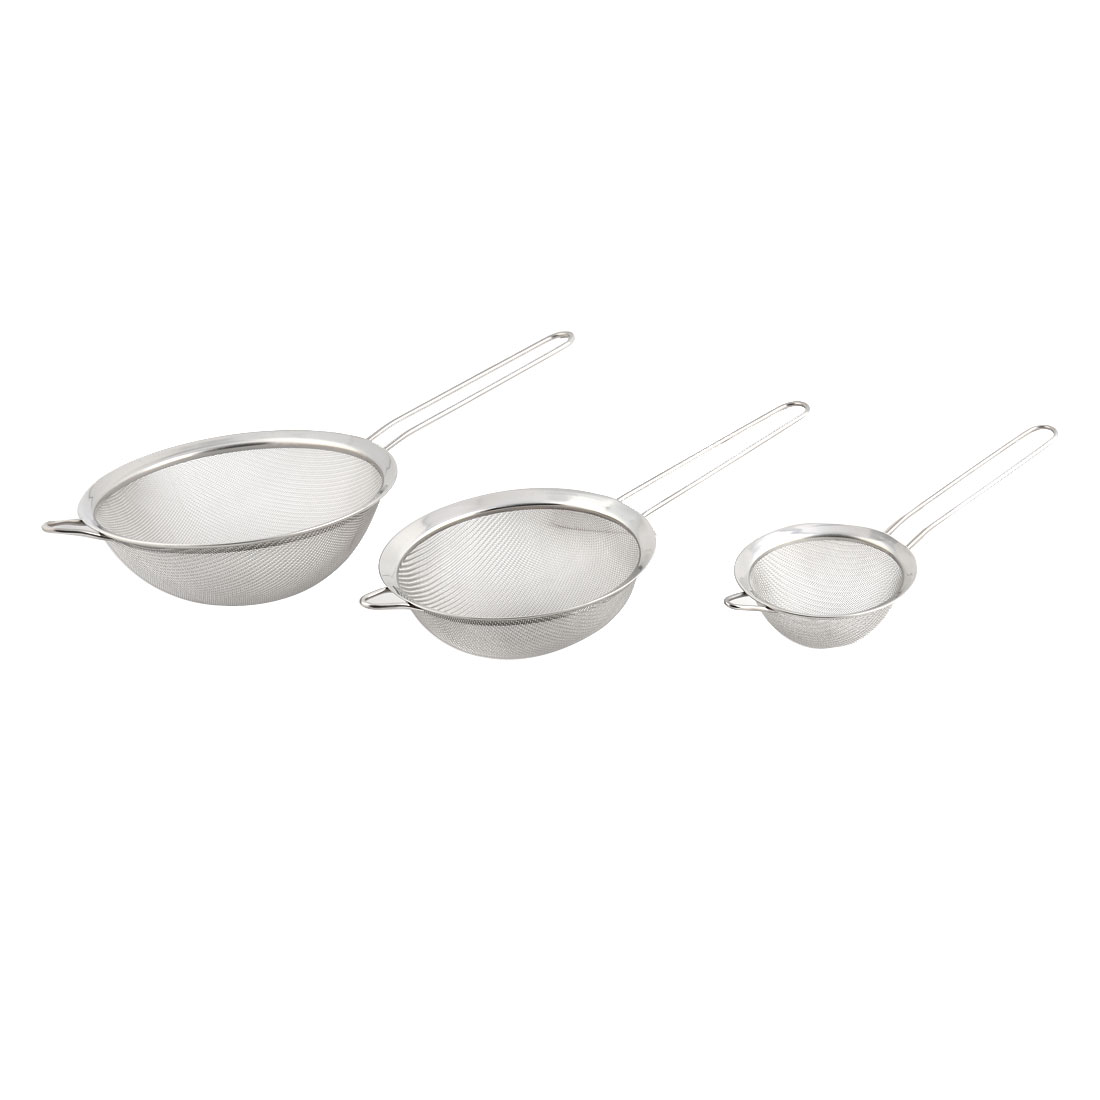 Apartment Metal Oil Flour Cooking Mesh Strainer Colander Sieve Sifter 3 in 1